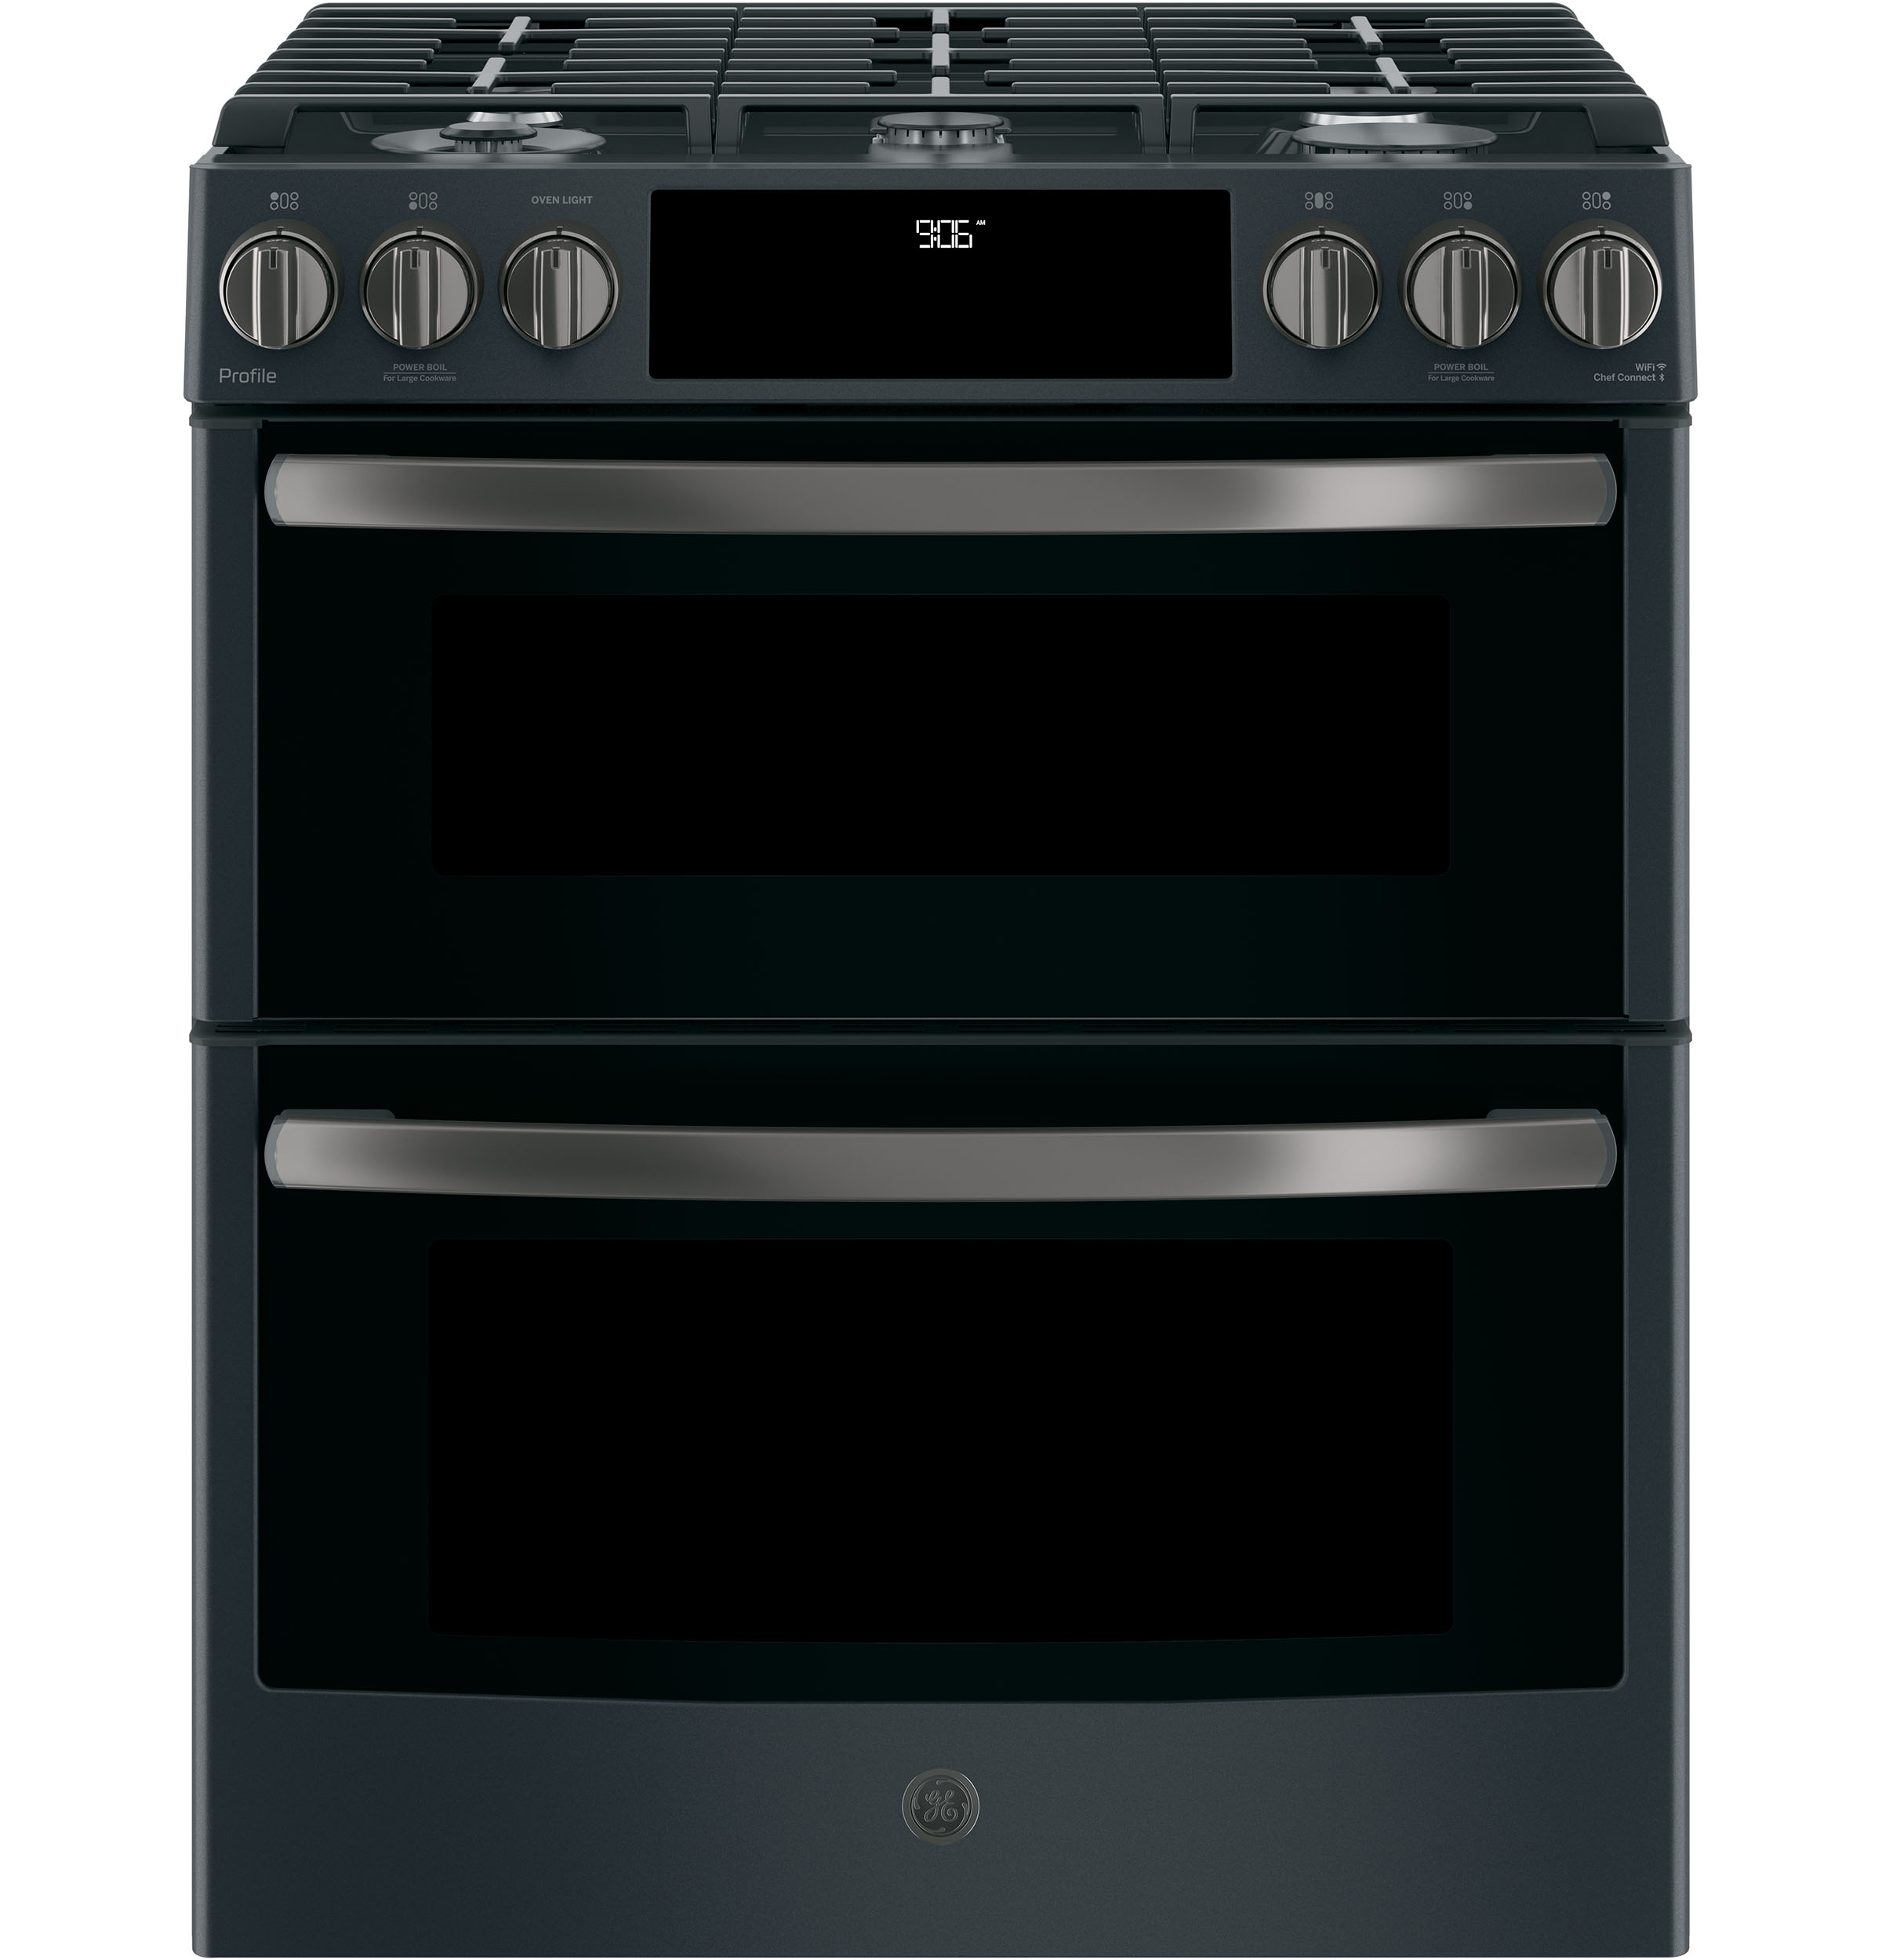 "GE Profile GE Profile™ Series 30"" Slide-In Front Control Gas Double Oven Convection Range"